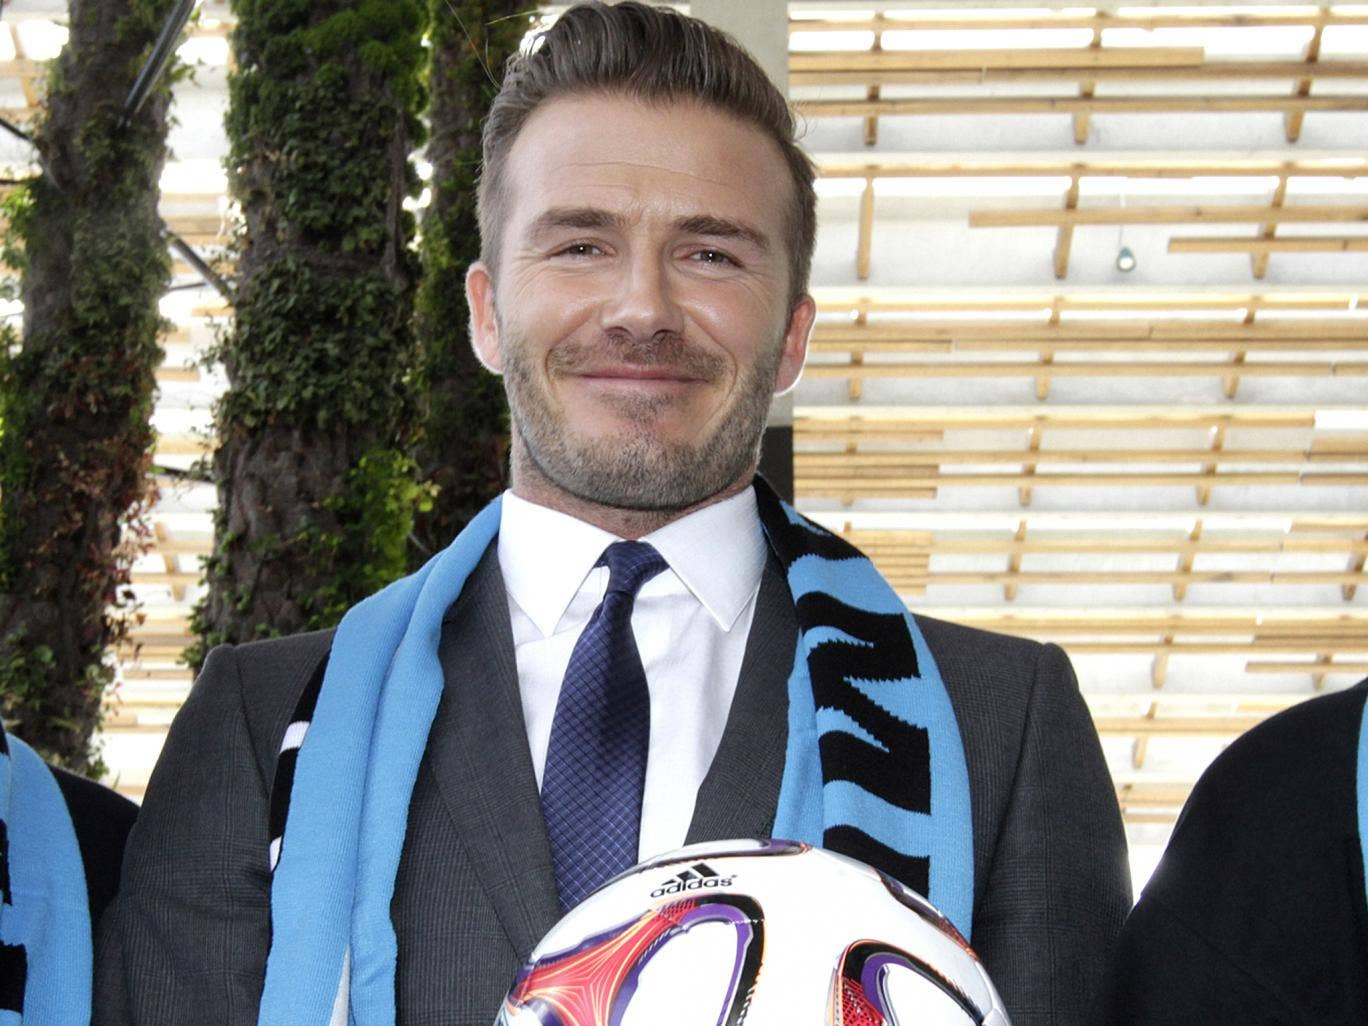 David Beckham is planning to build a stadium in Miami's port for a new football team he will own